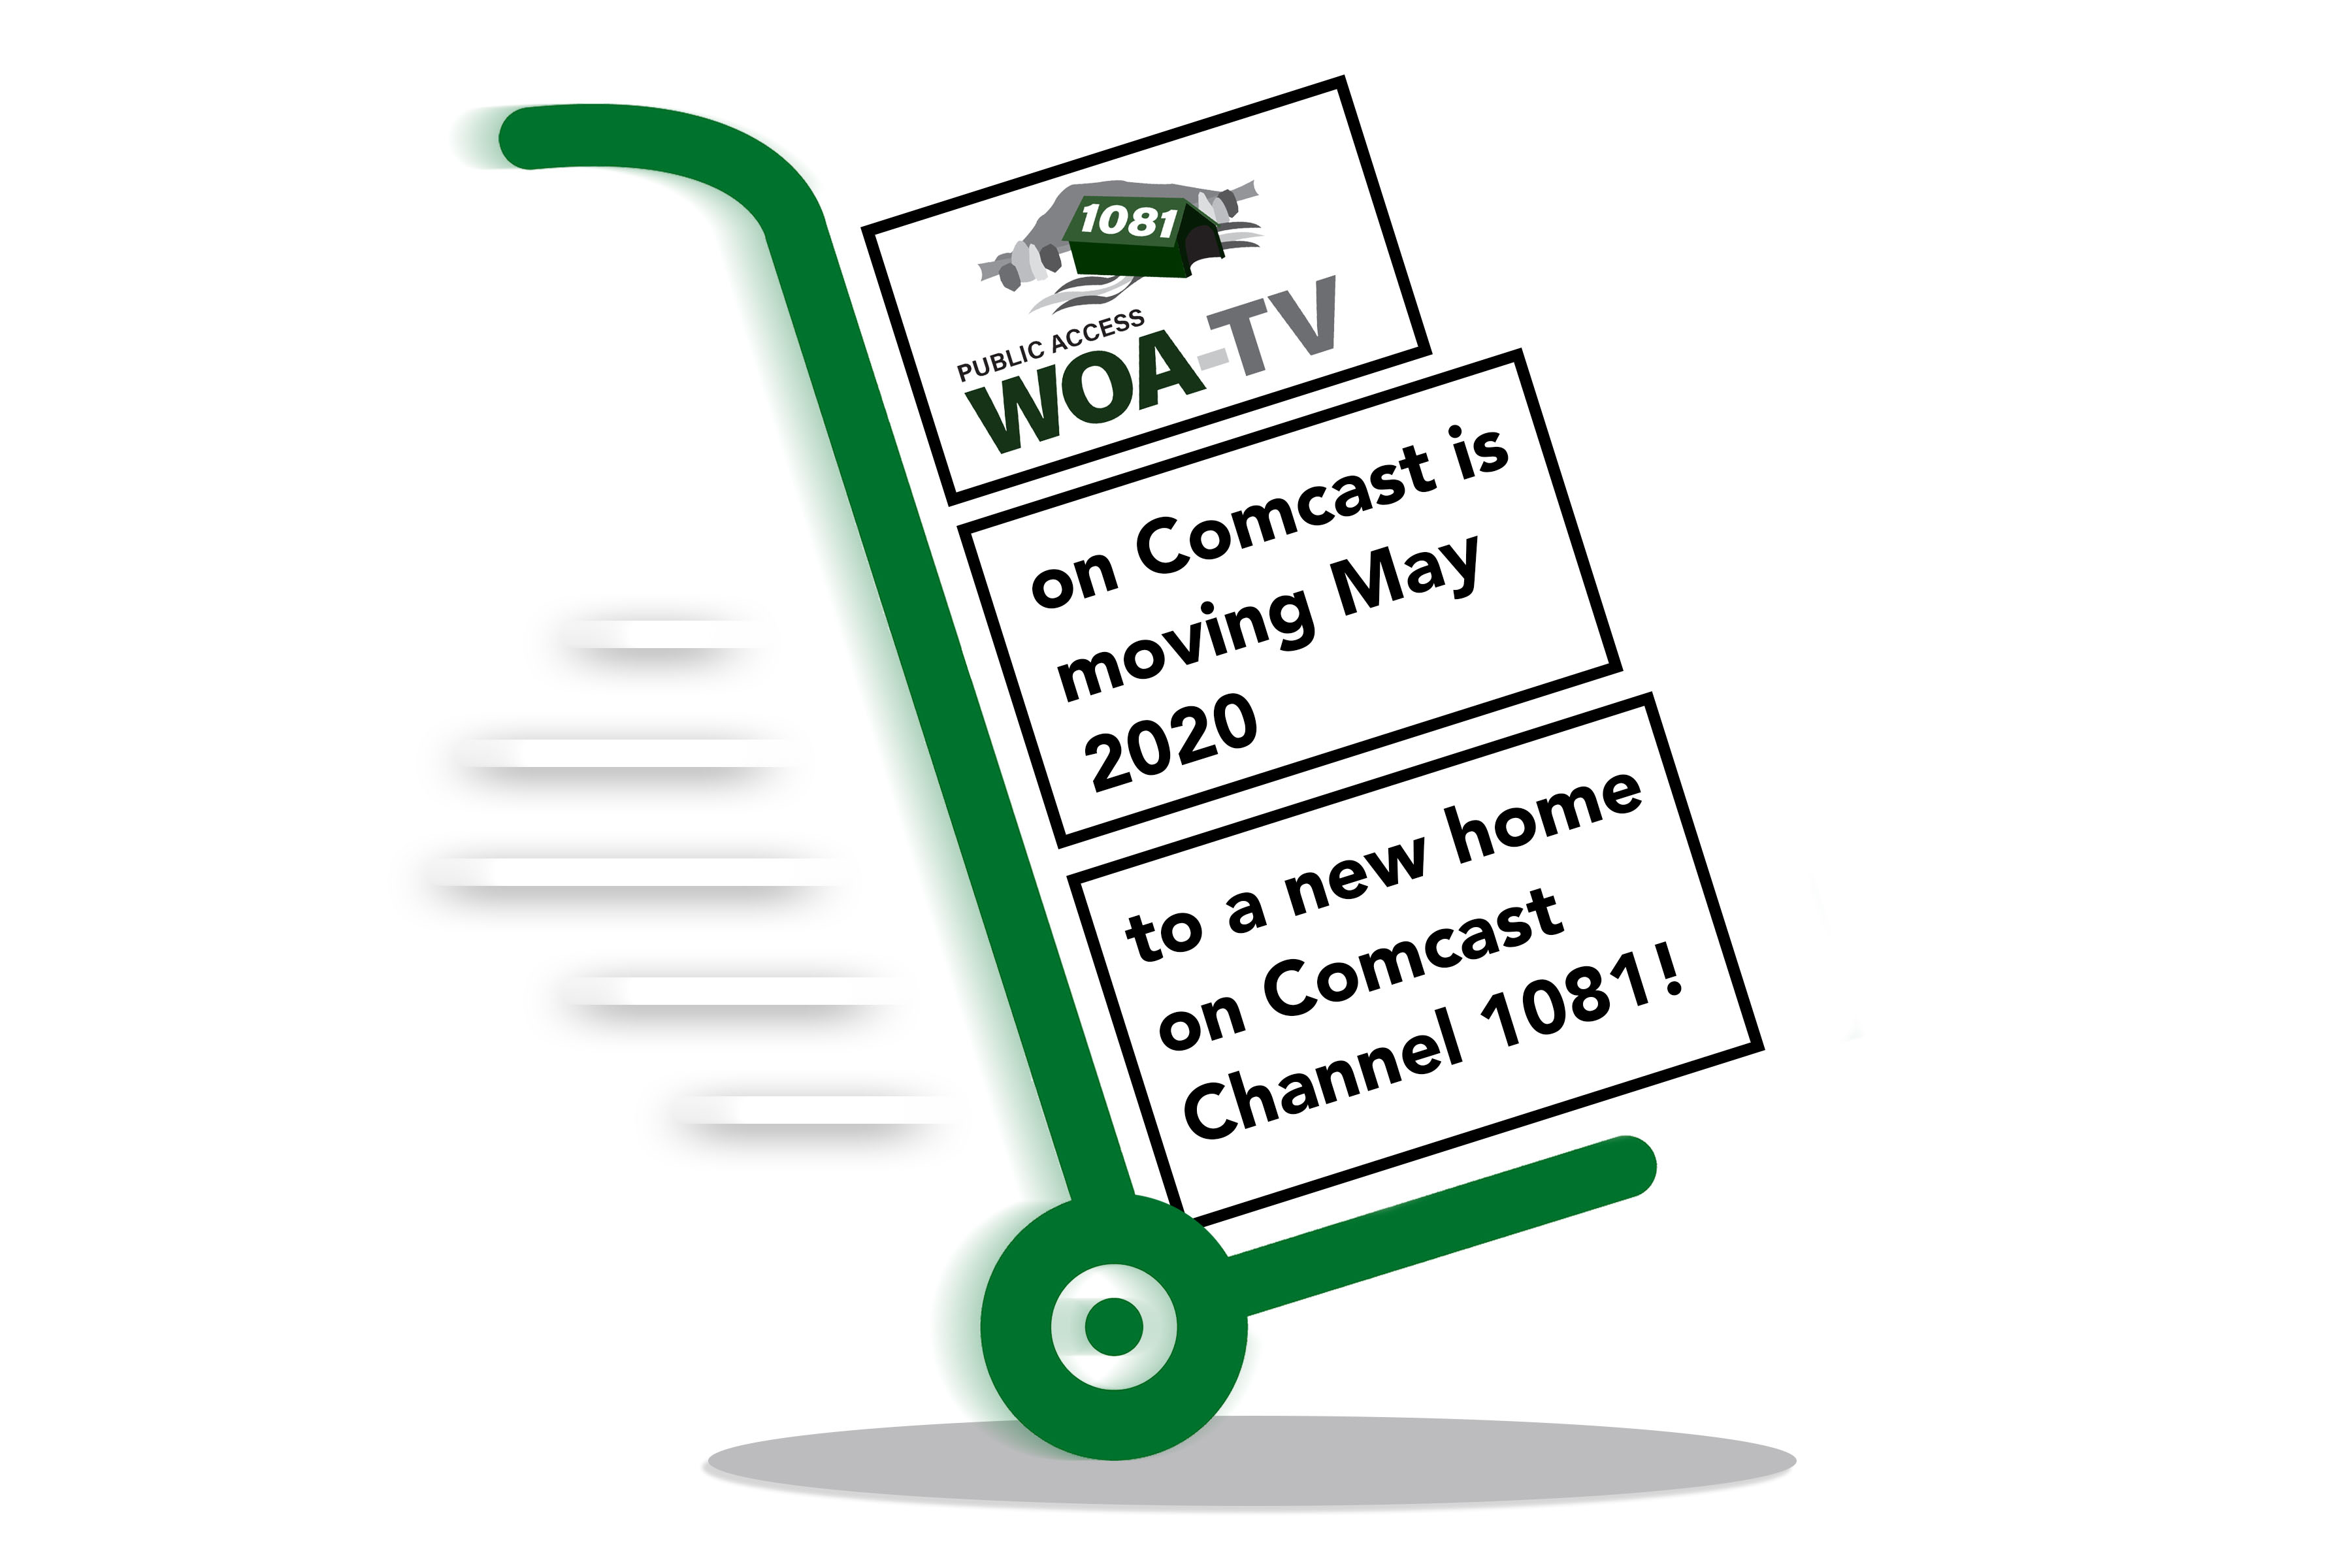 WOA is Moving!